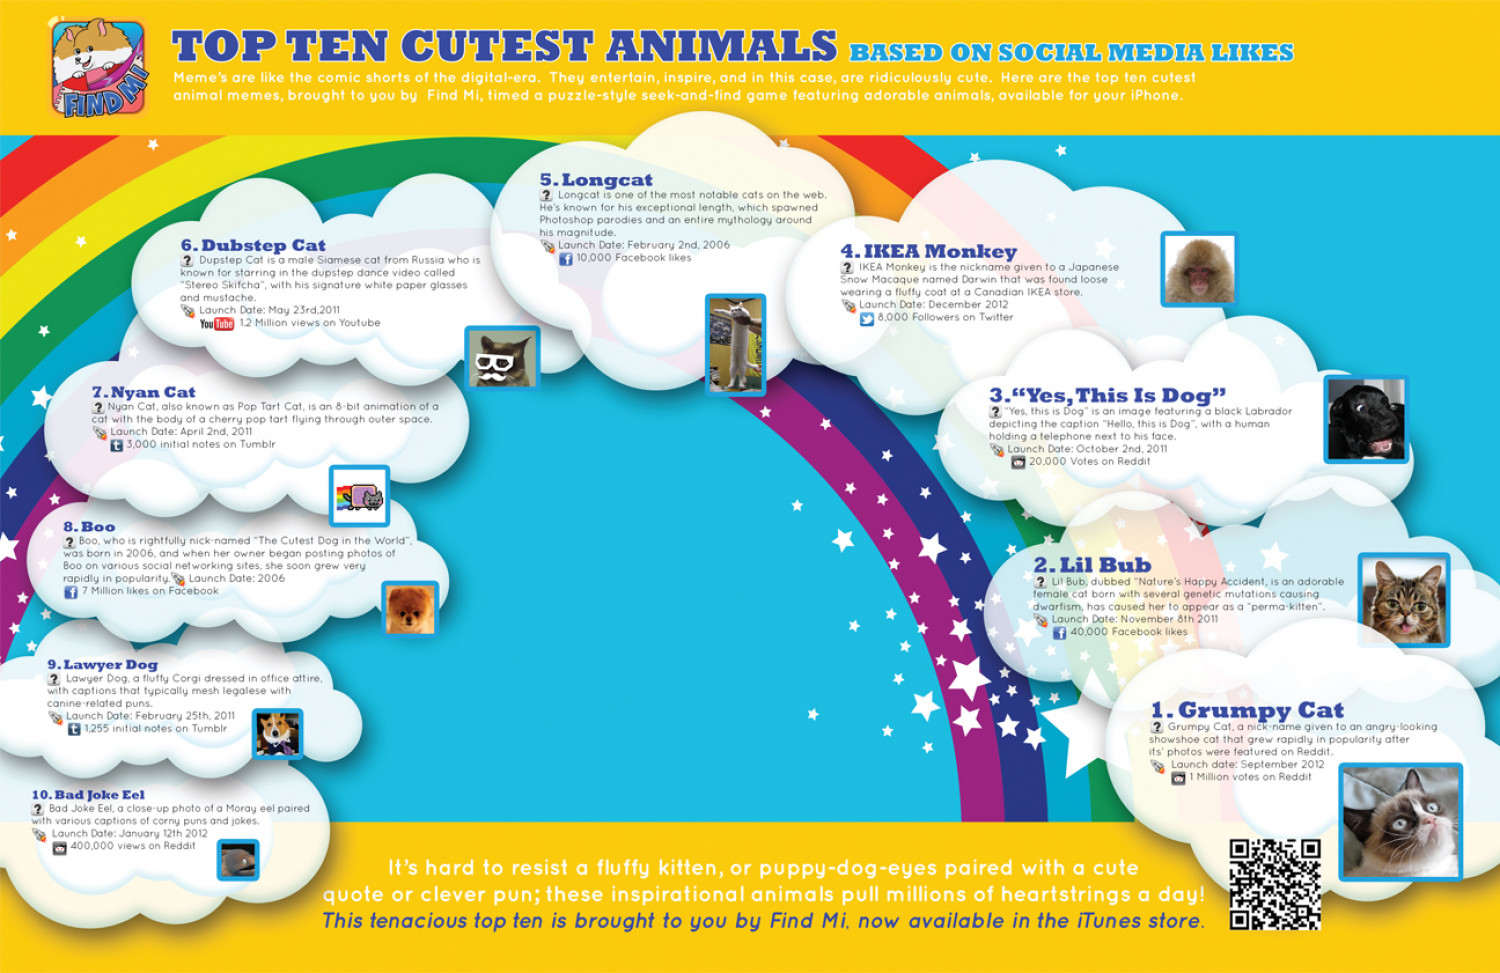 Top Ten Cutest Animals based on Social Media Likes Infographic